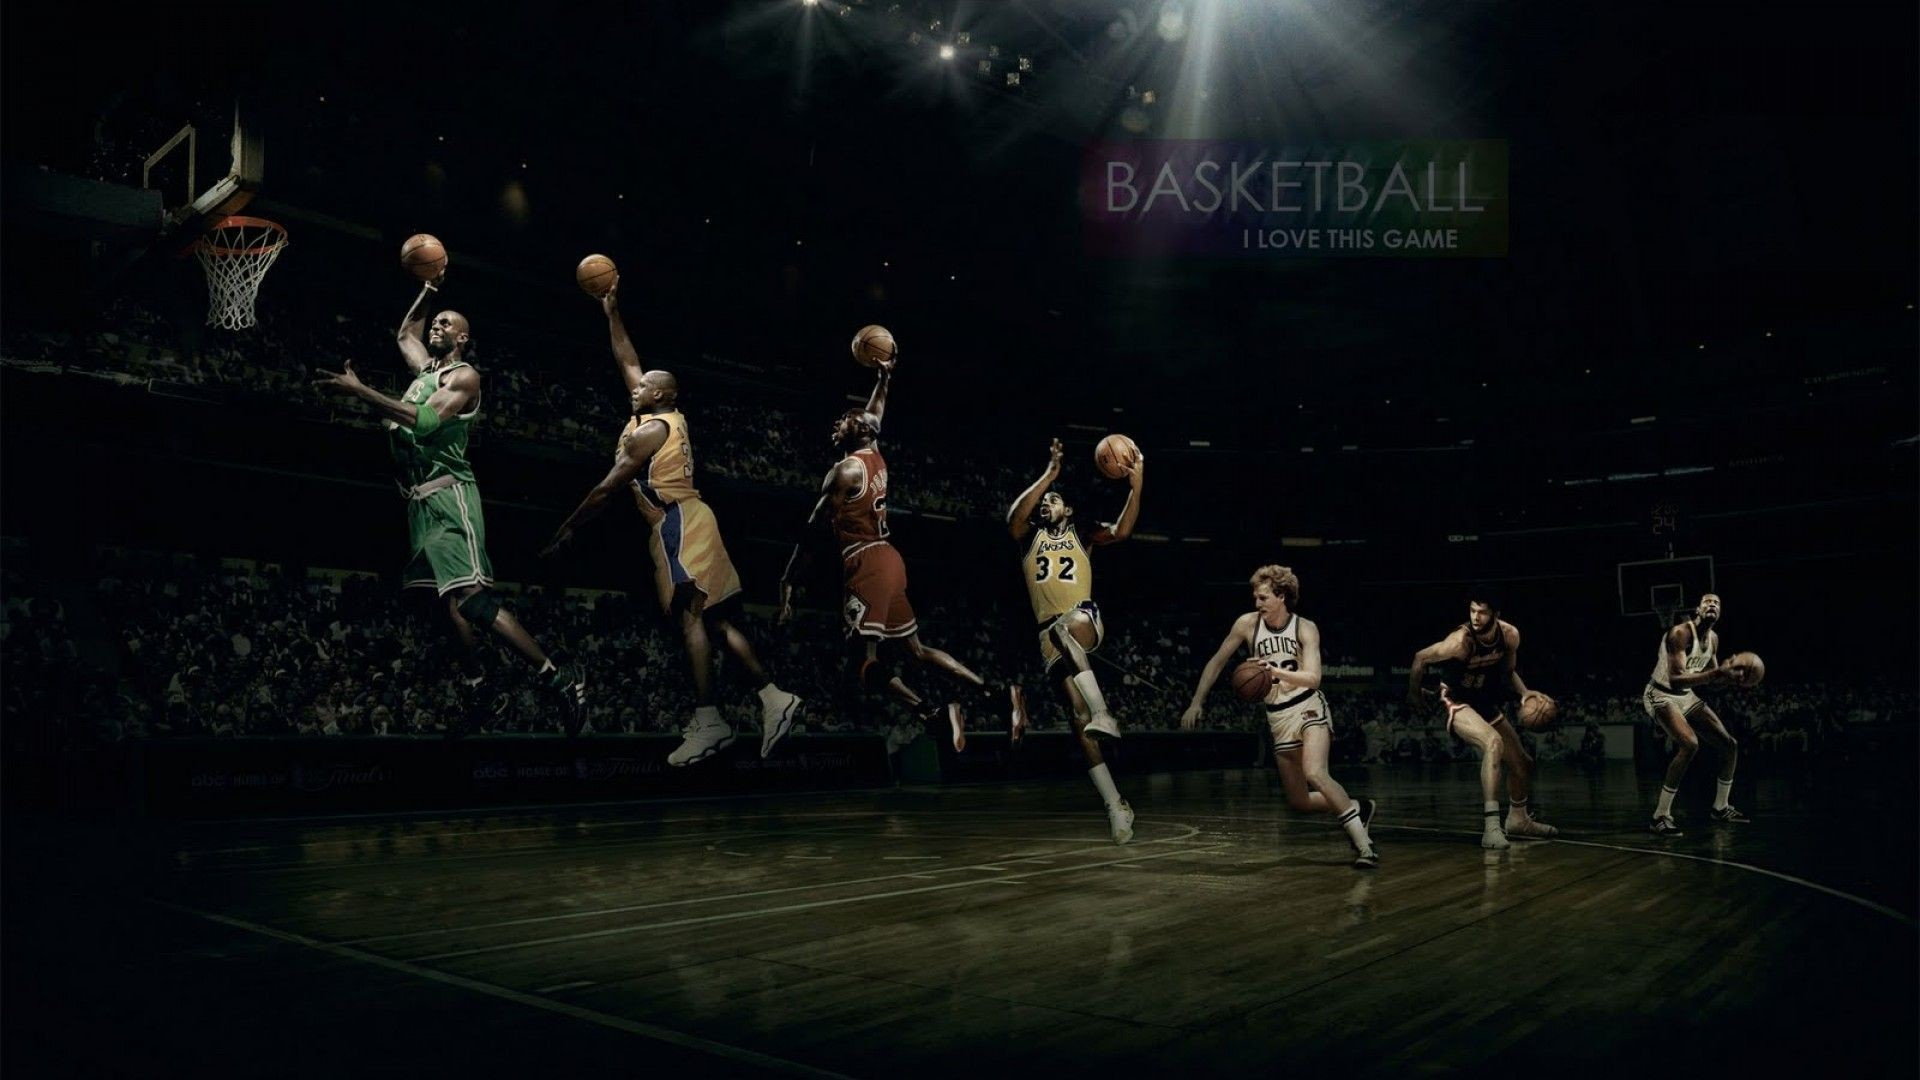 1920x1080 Basketball HD Awesome Photo – Basketball HD Wallpapers, 1920x1080 px – free download